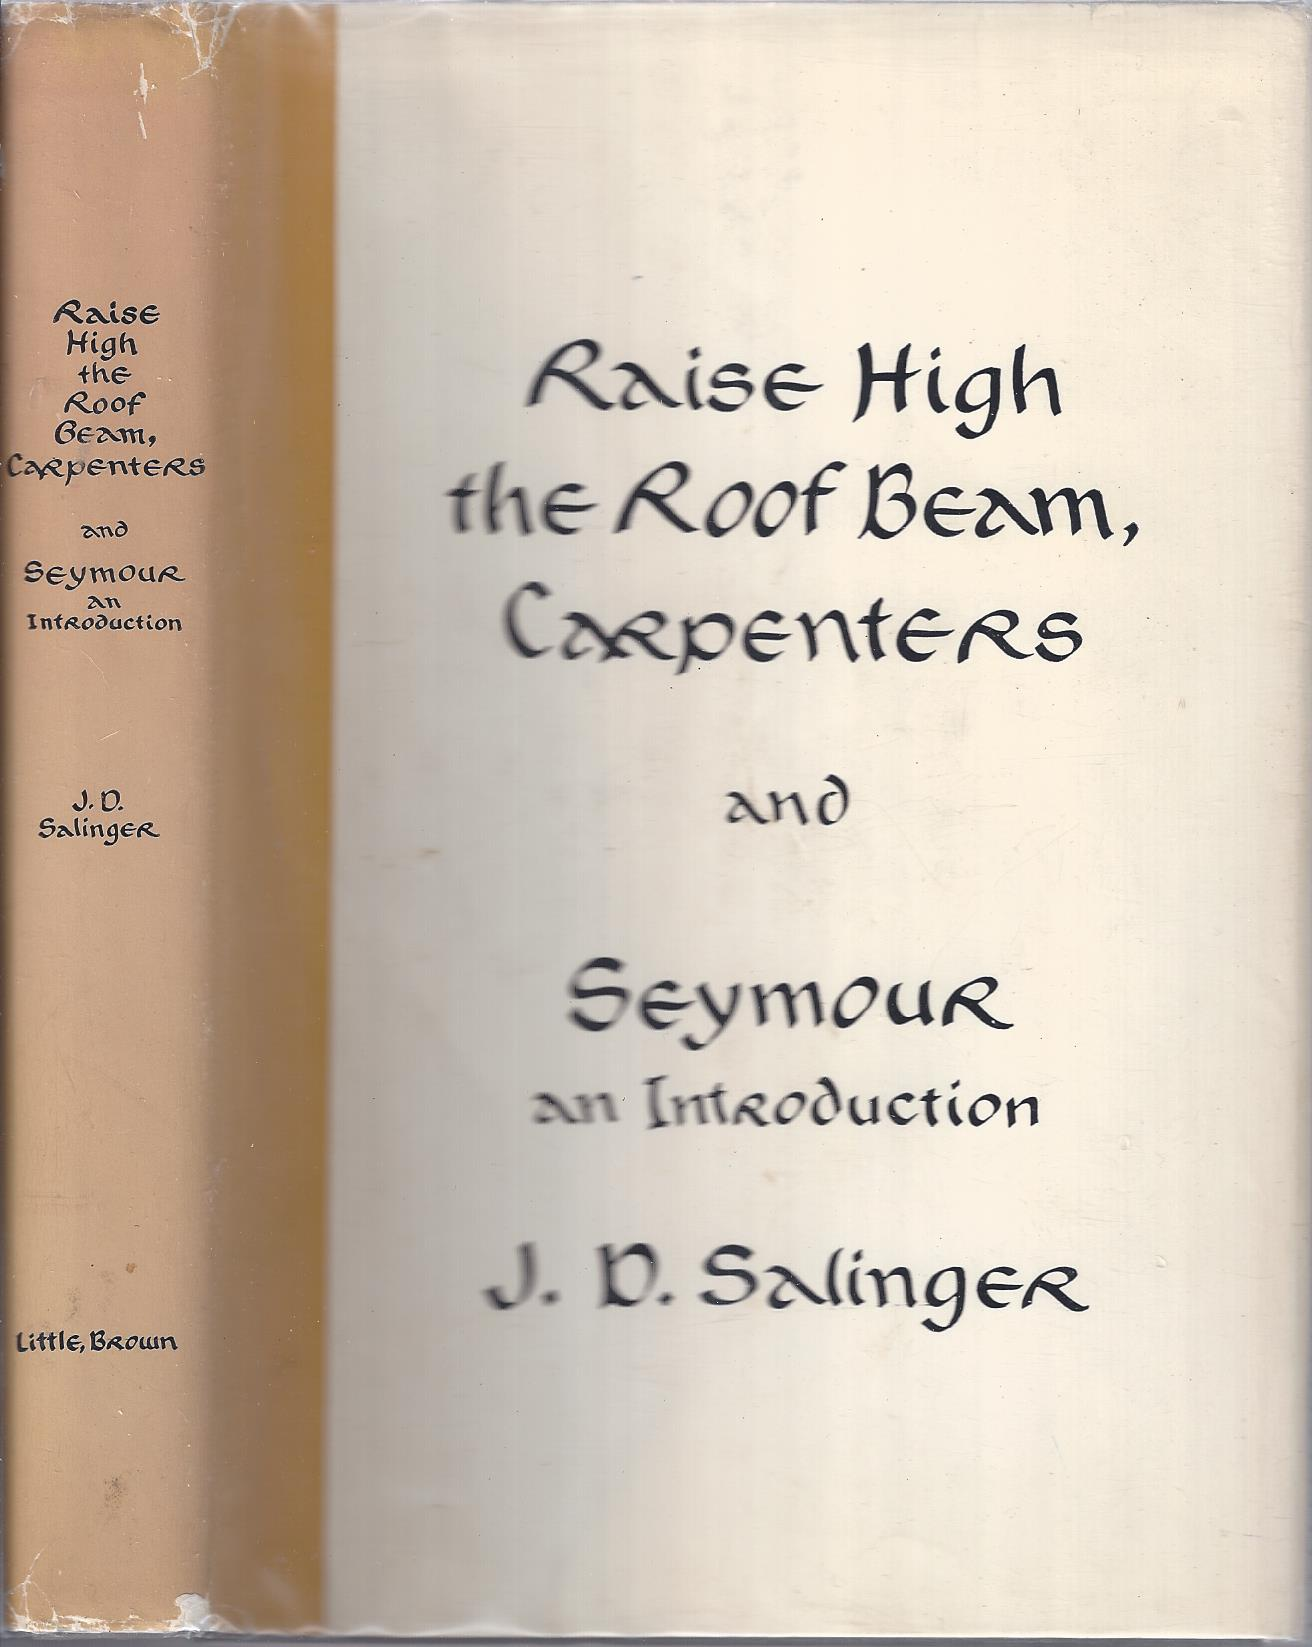 Image for Raise High the Roofbeam, Carpenters and Seymour, An Introduction